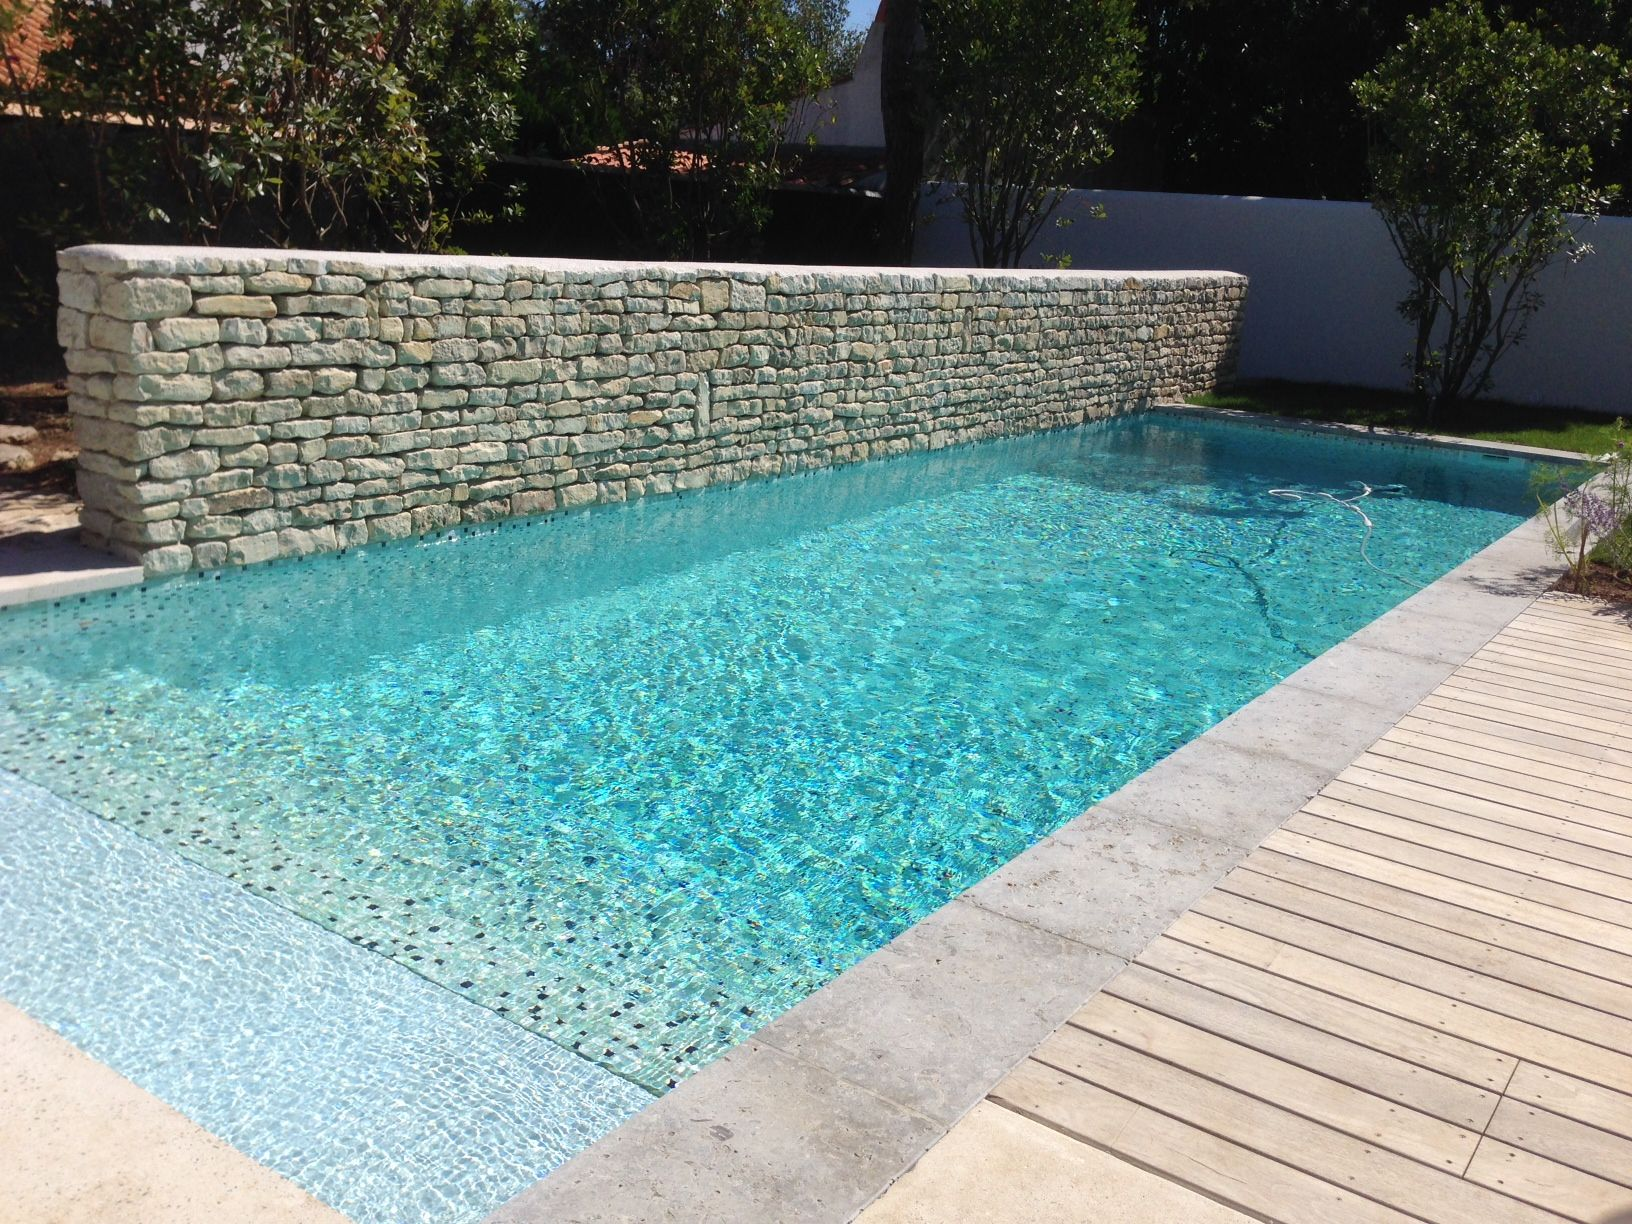 mosaique piscine pate de verre 1 1632Ã 1224 pool planning